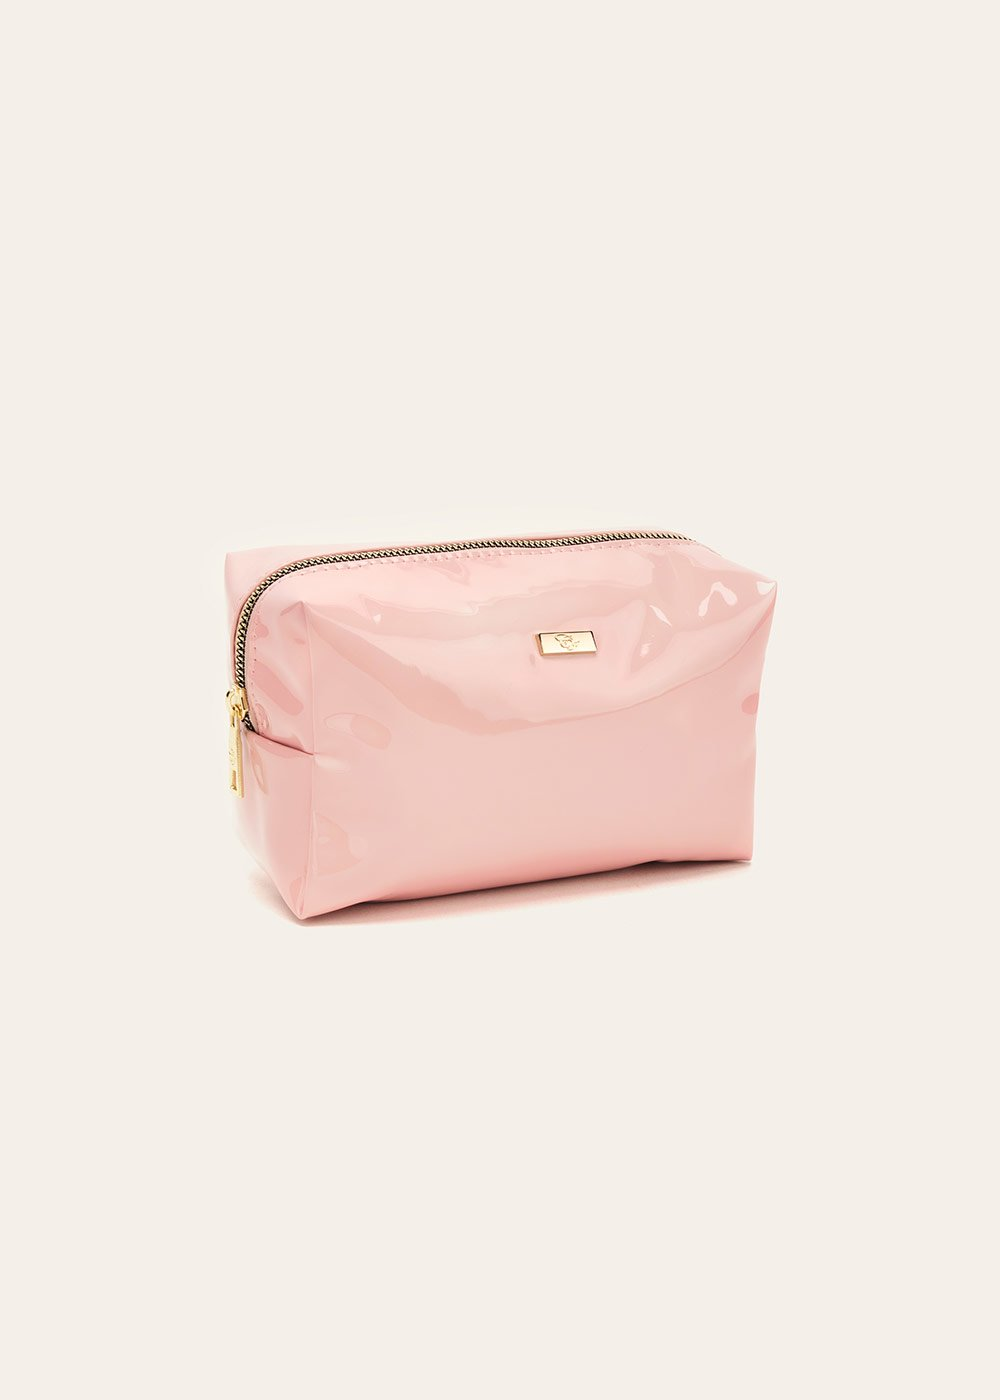 Blanc vanity case with patent-leather effect - Sepia - Woman